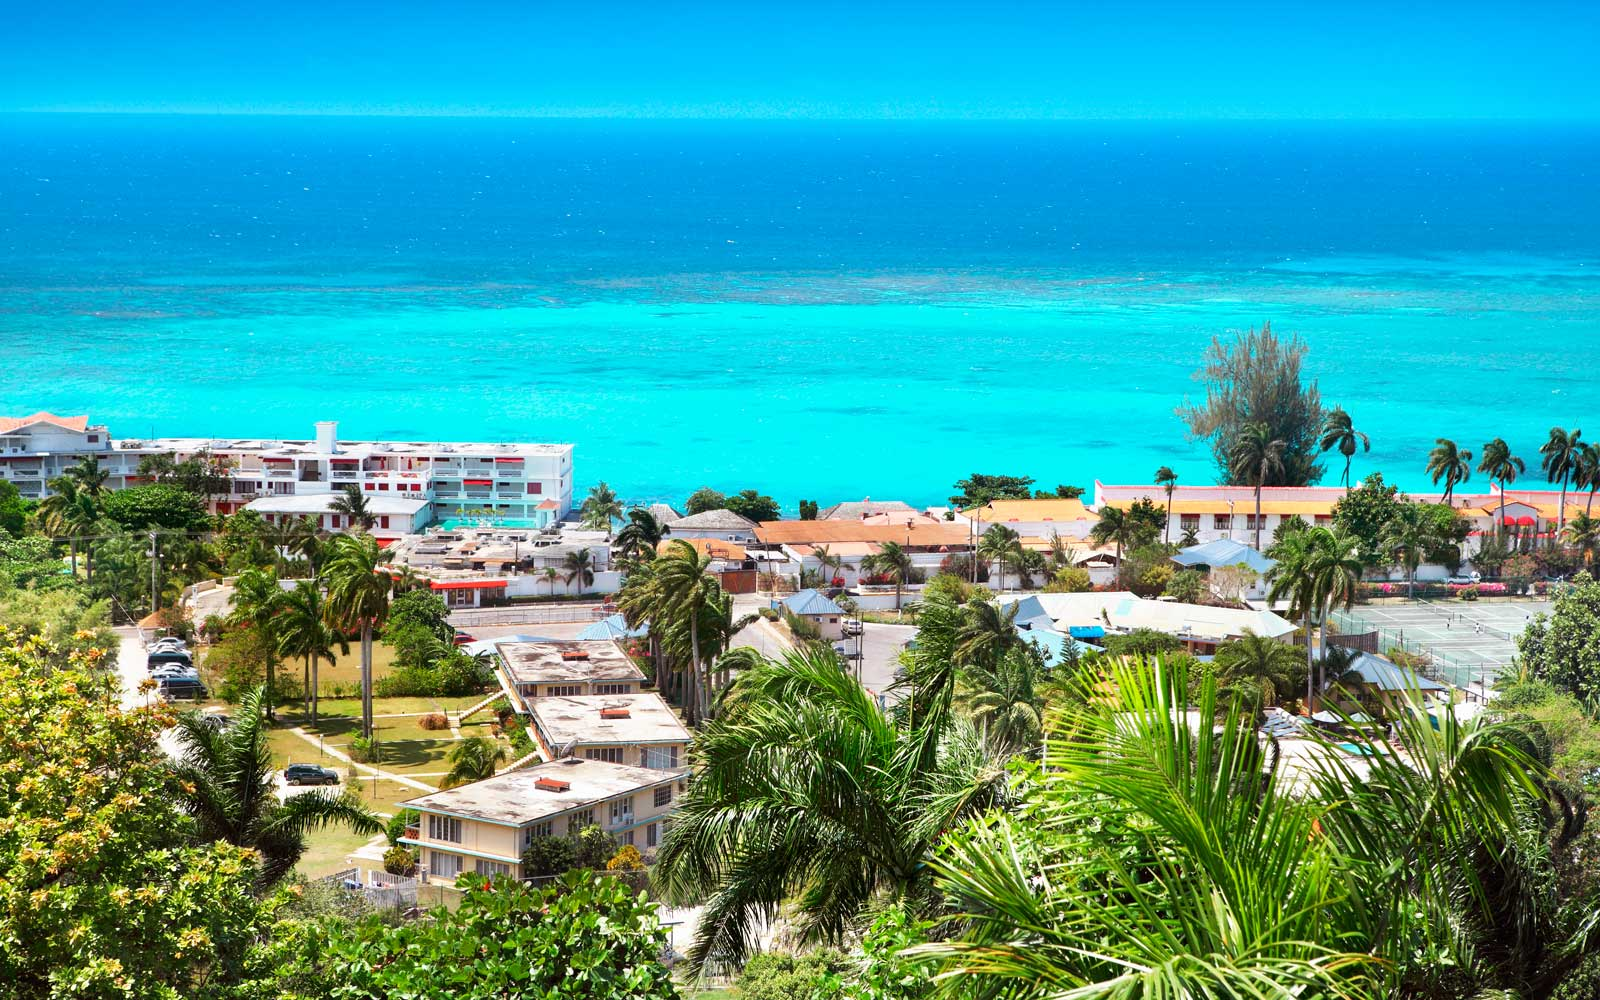 Montego Bay is a popular tourist destination in Jamaica